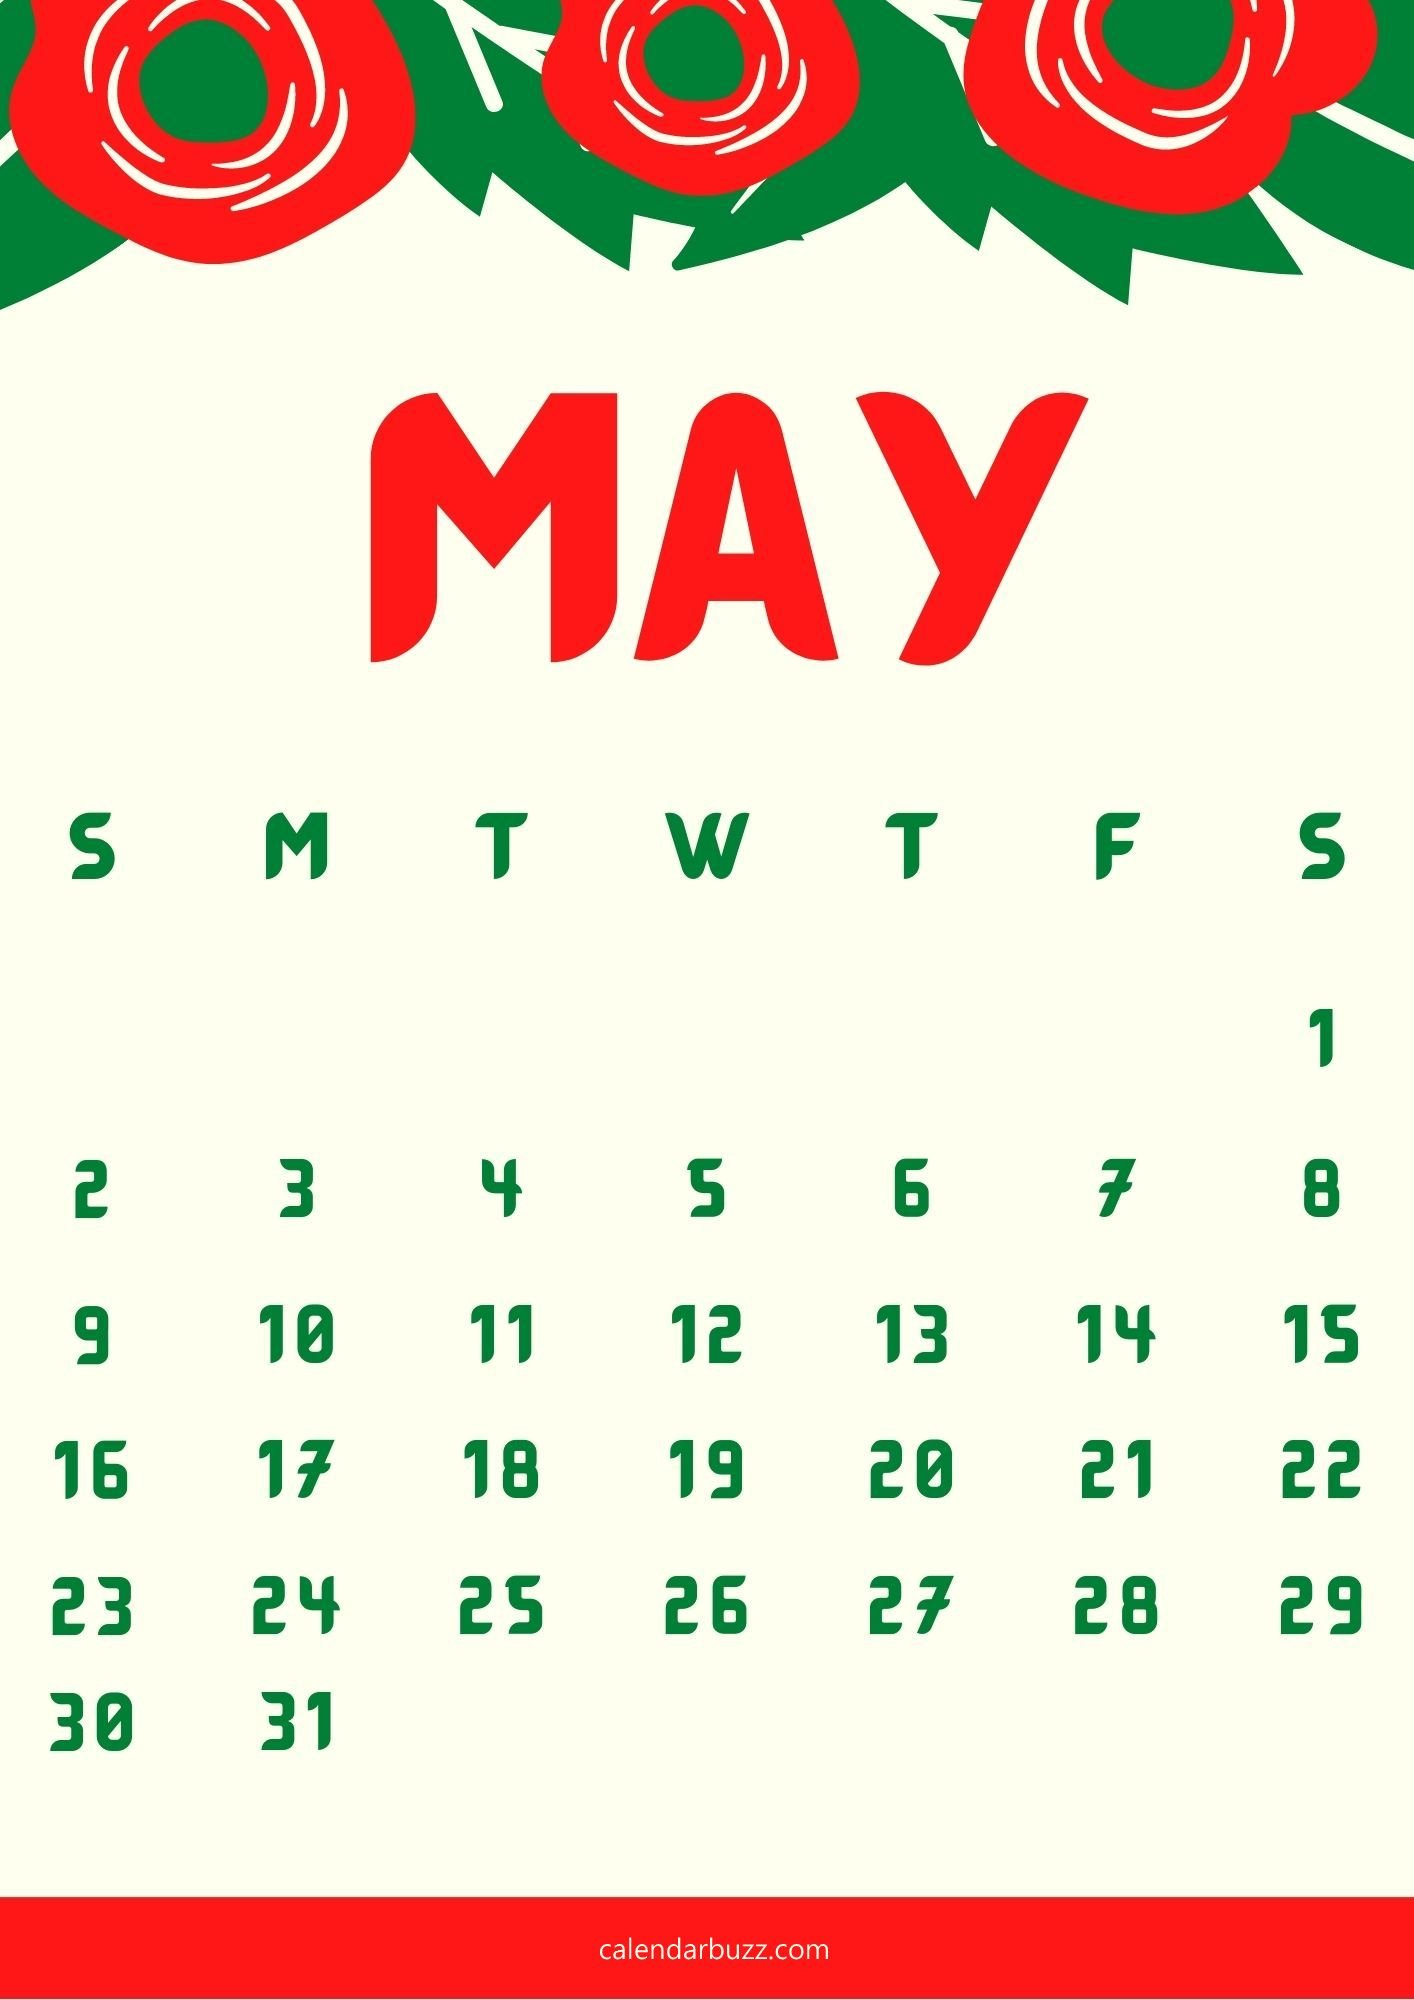 May 2021 Wall Calendar Printable Templates Free Download Calendares To Print That Have The Week M Thru Sunday